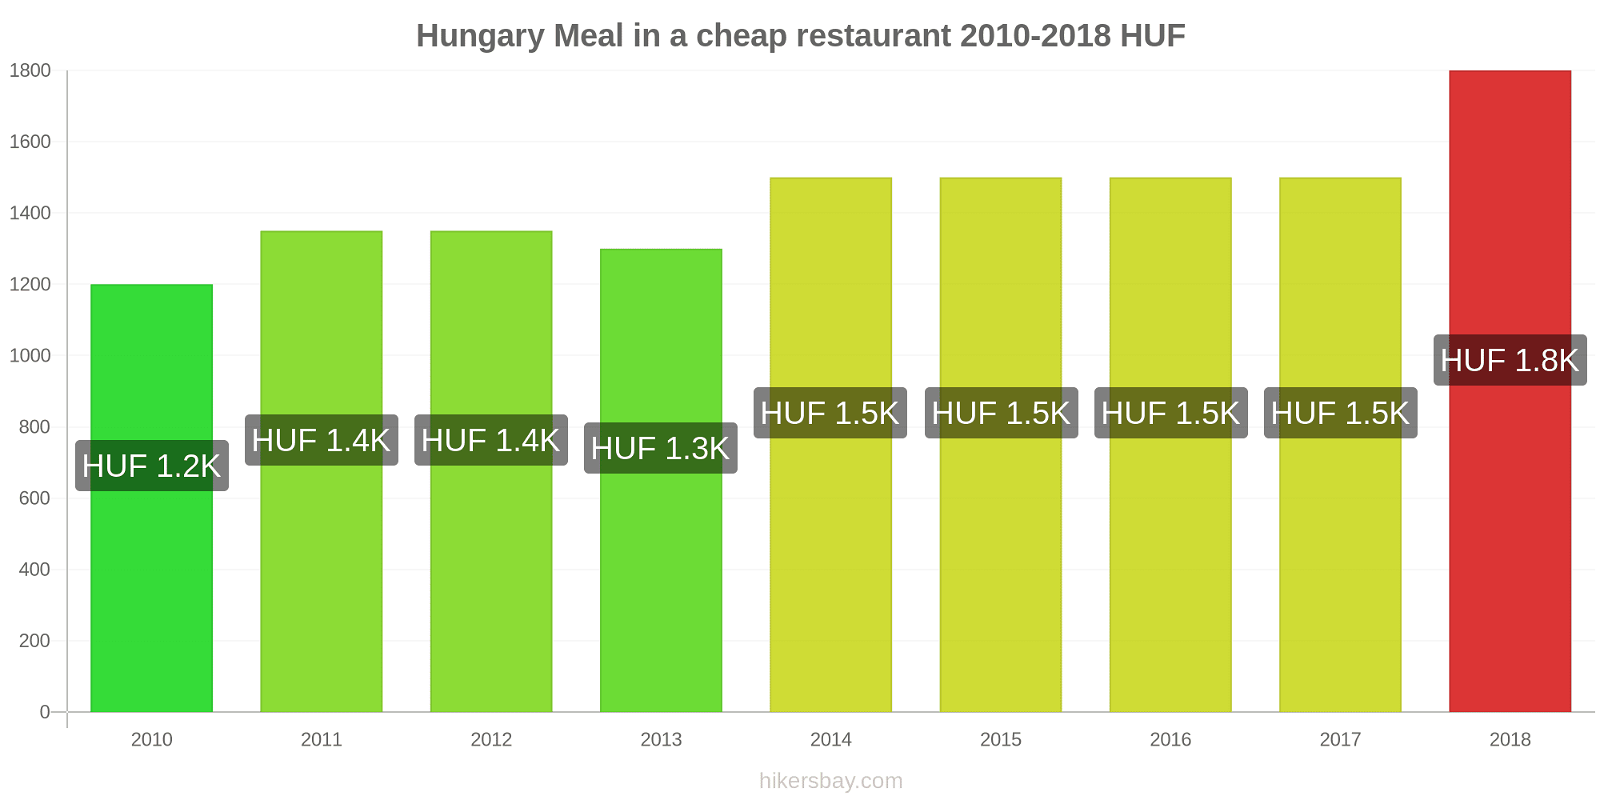 Hungary price changes Meal in a cheap restaurant hikersbay.com